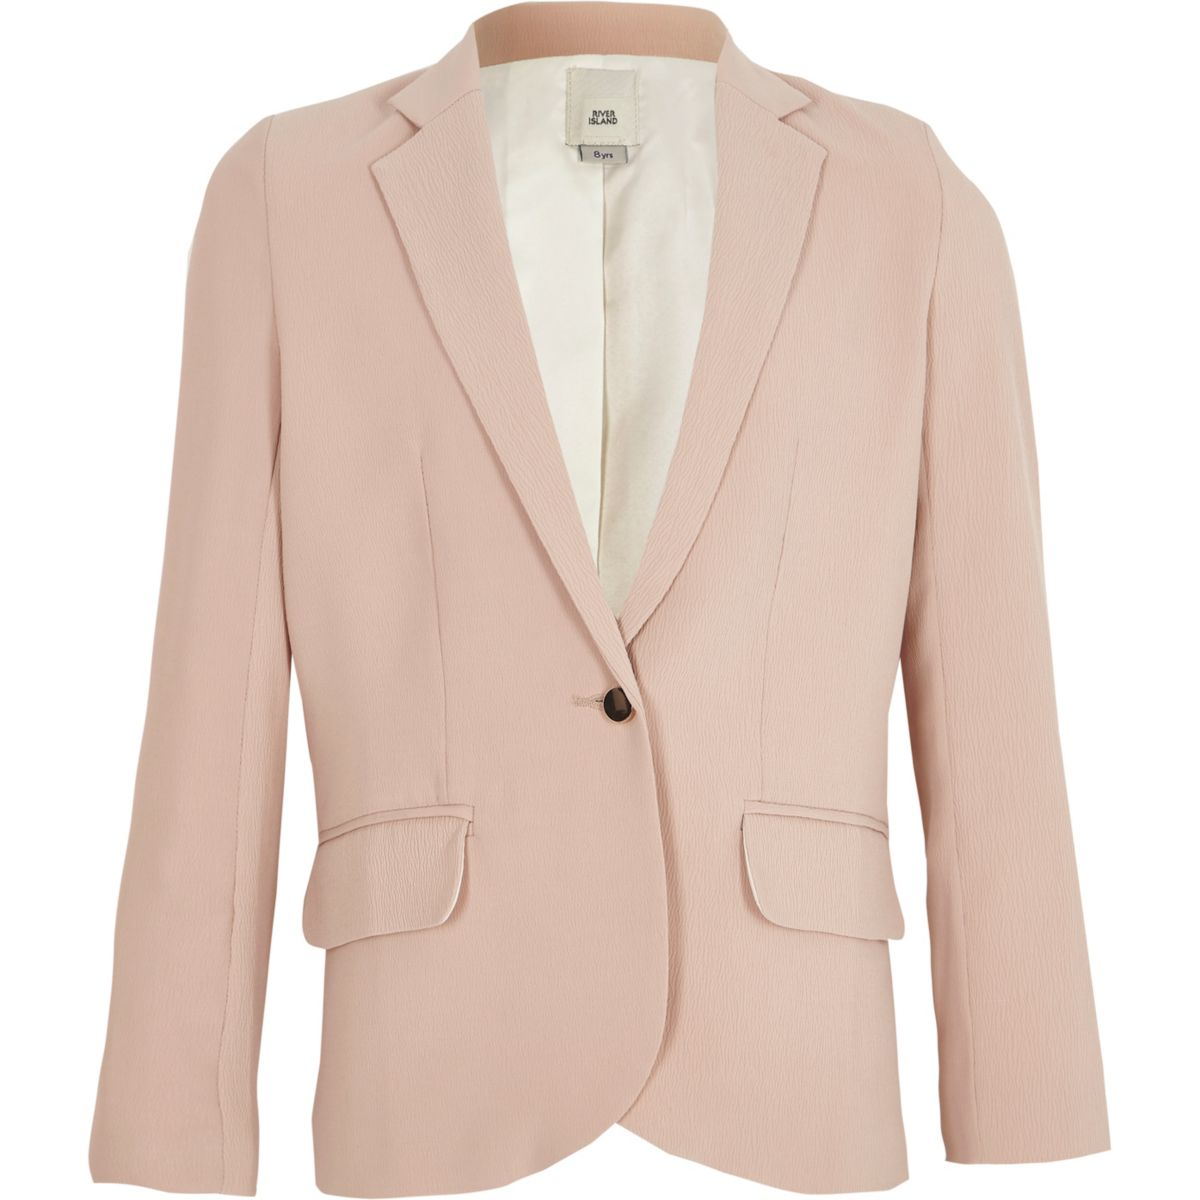 Find light pink blazer at ShopStyle. Shop the latest collection of light pink blazer from the most popular stores - all in one place.